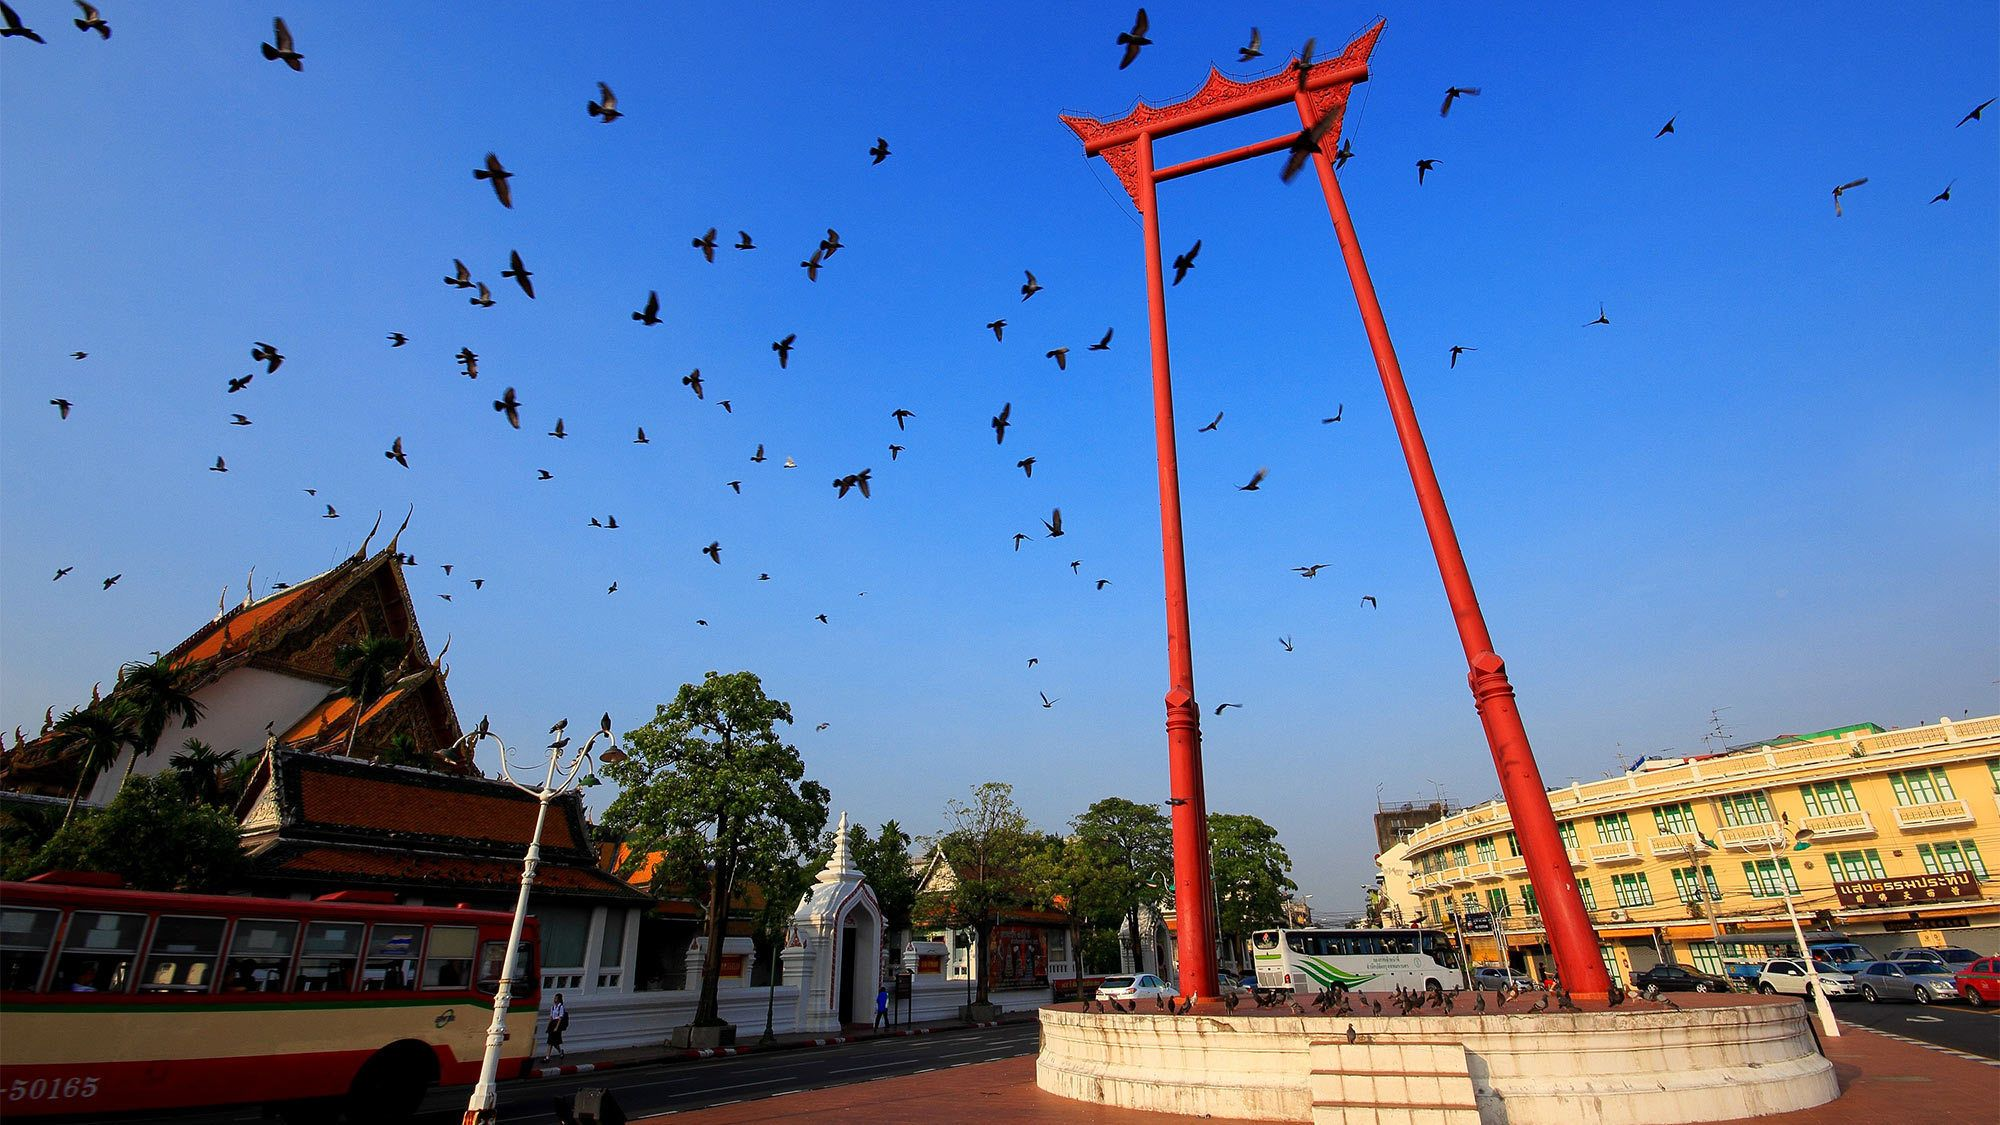 Birds flying over Siam